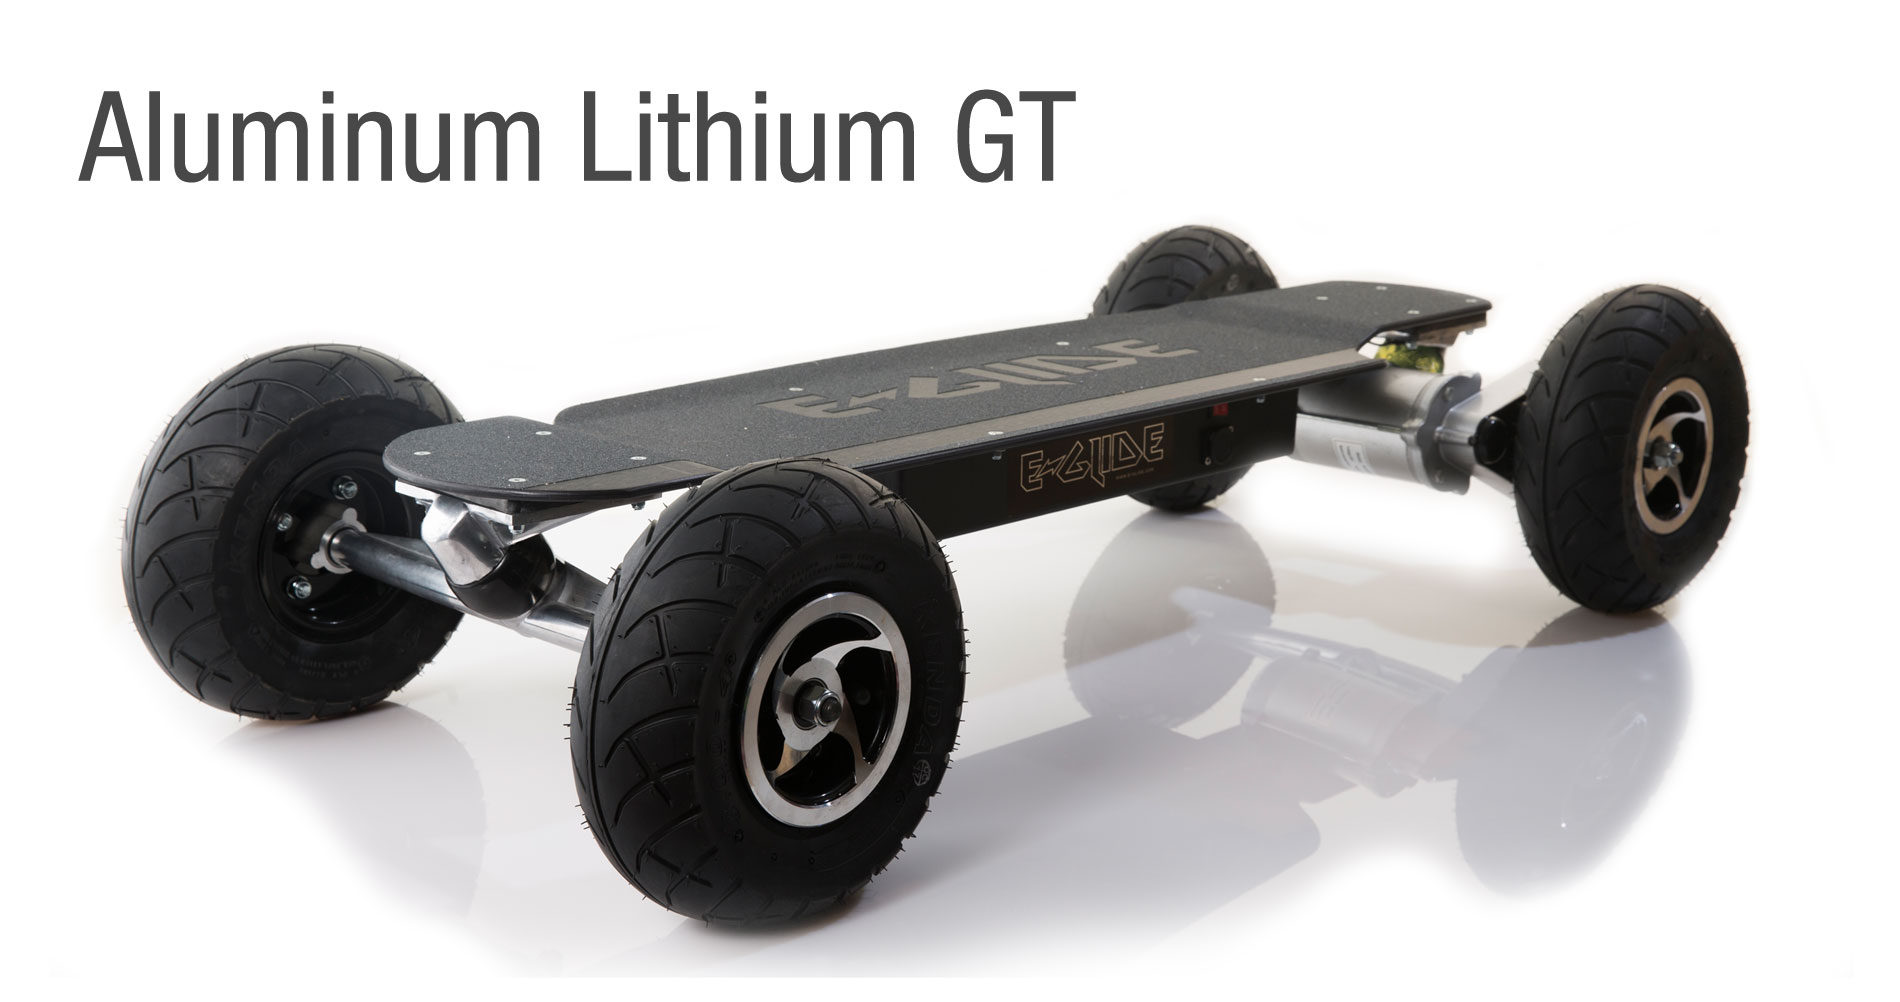 E Glide The Best Off Road Electric Skateboard Made